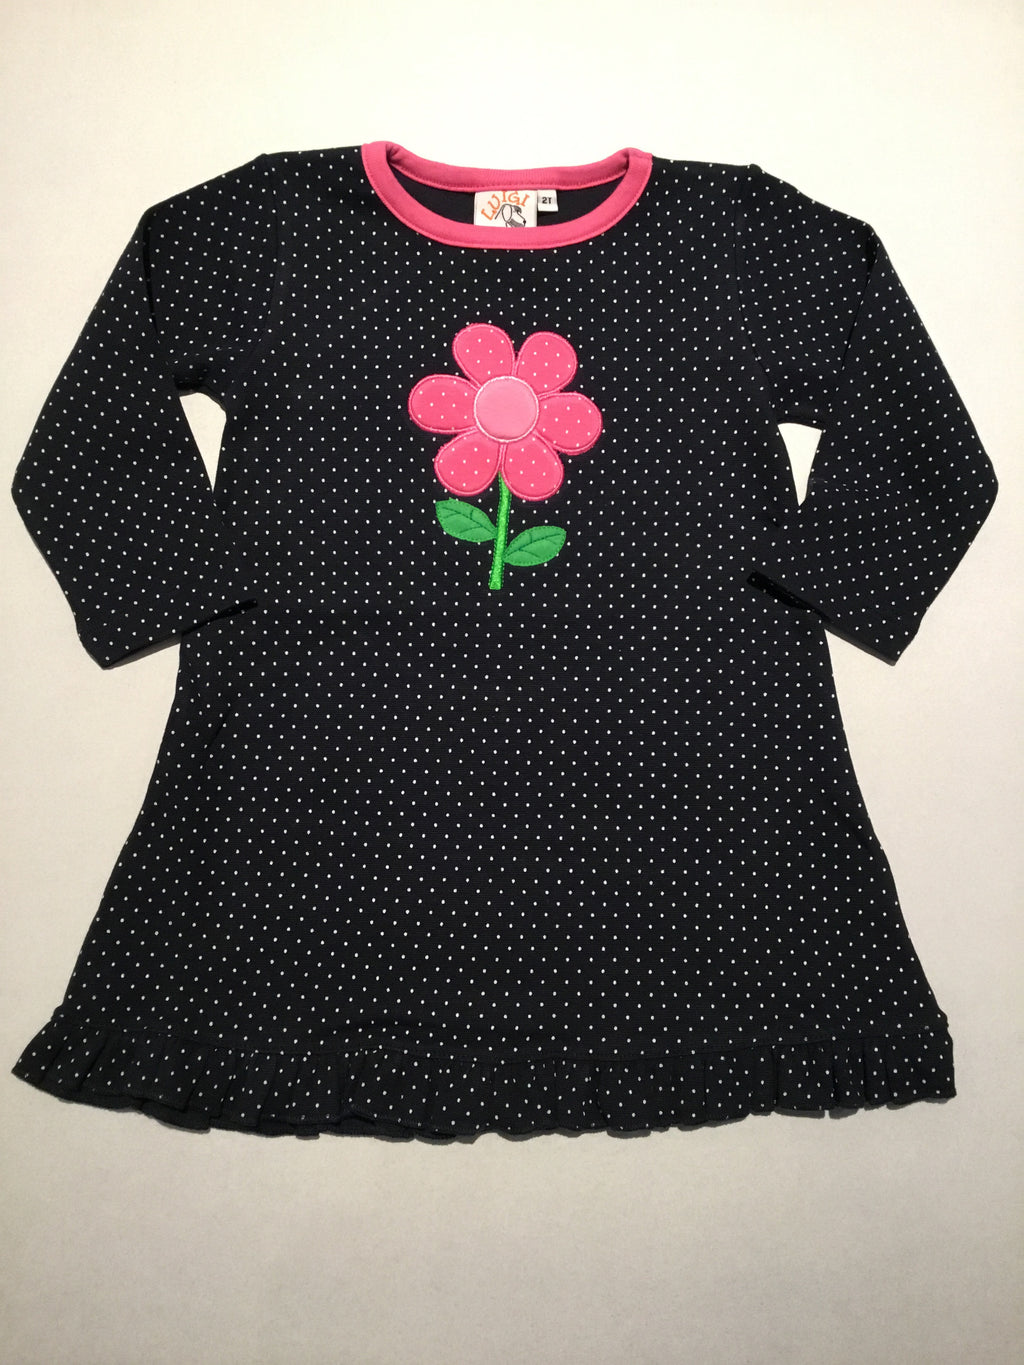 Pink Daisy Navy & White Dotted Ruffle L.S.Dress